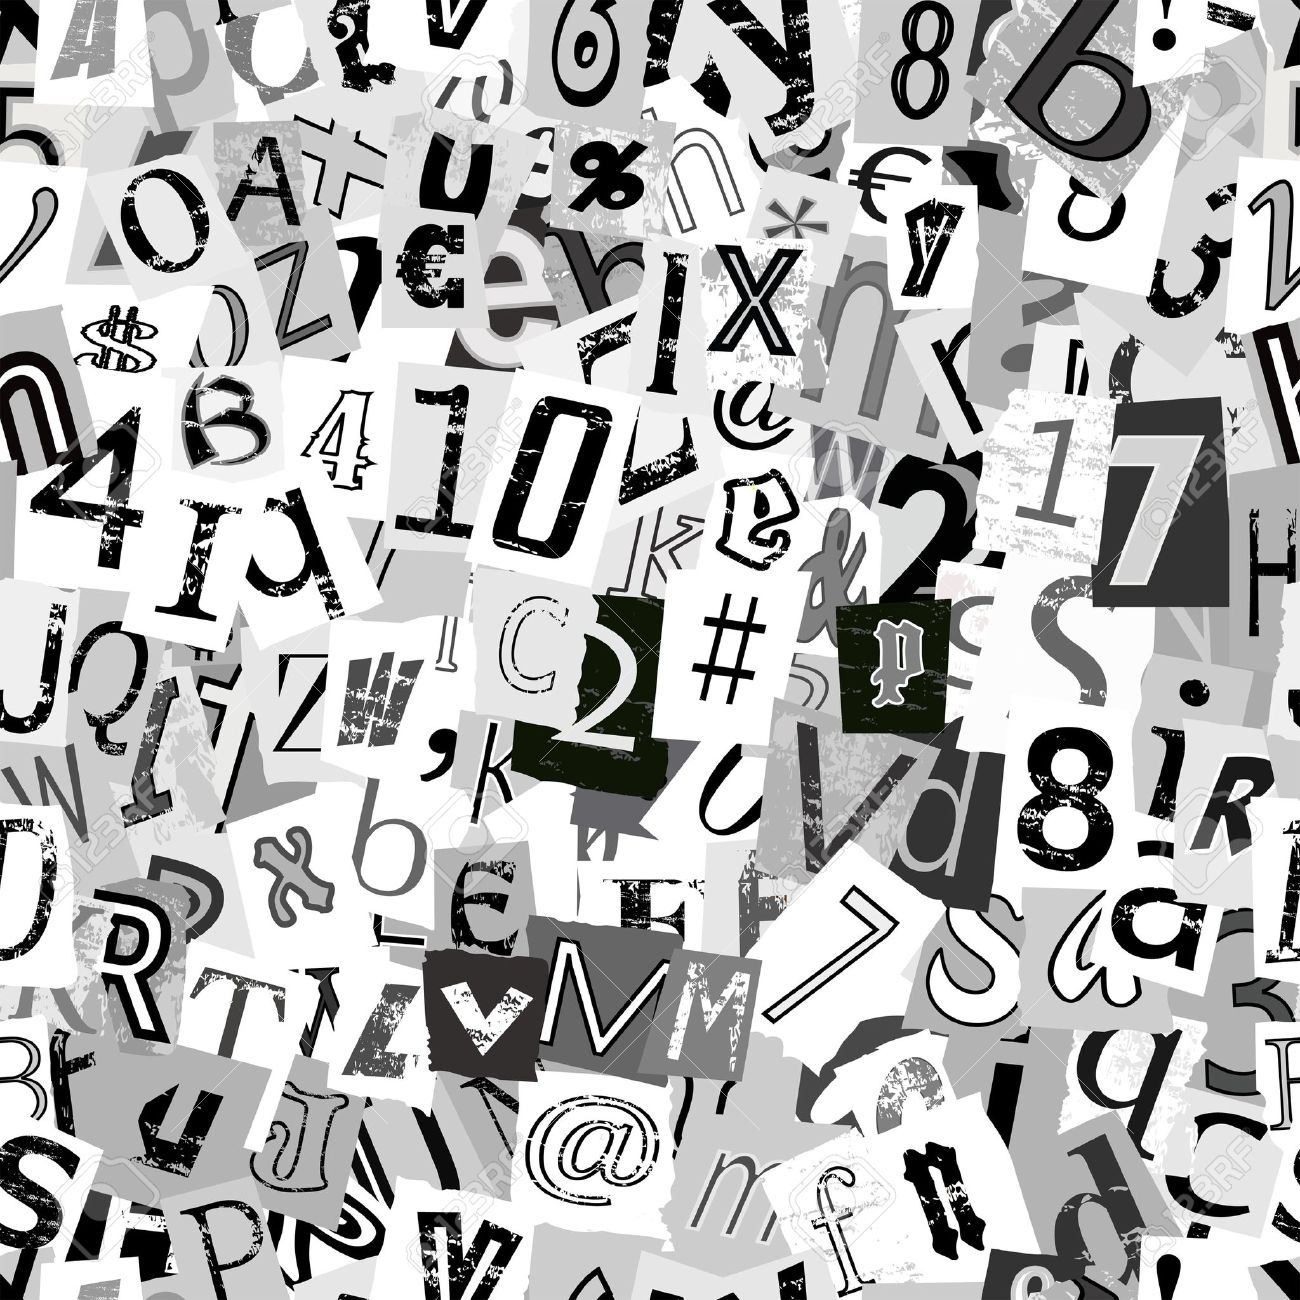 Black and white repeating newsprint letters wallpaper background - 15700431